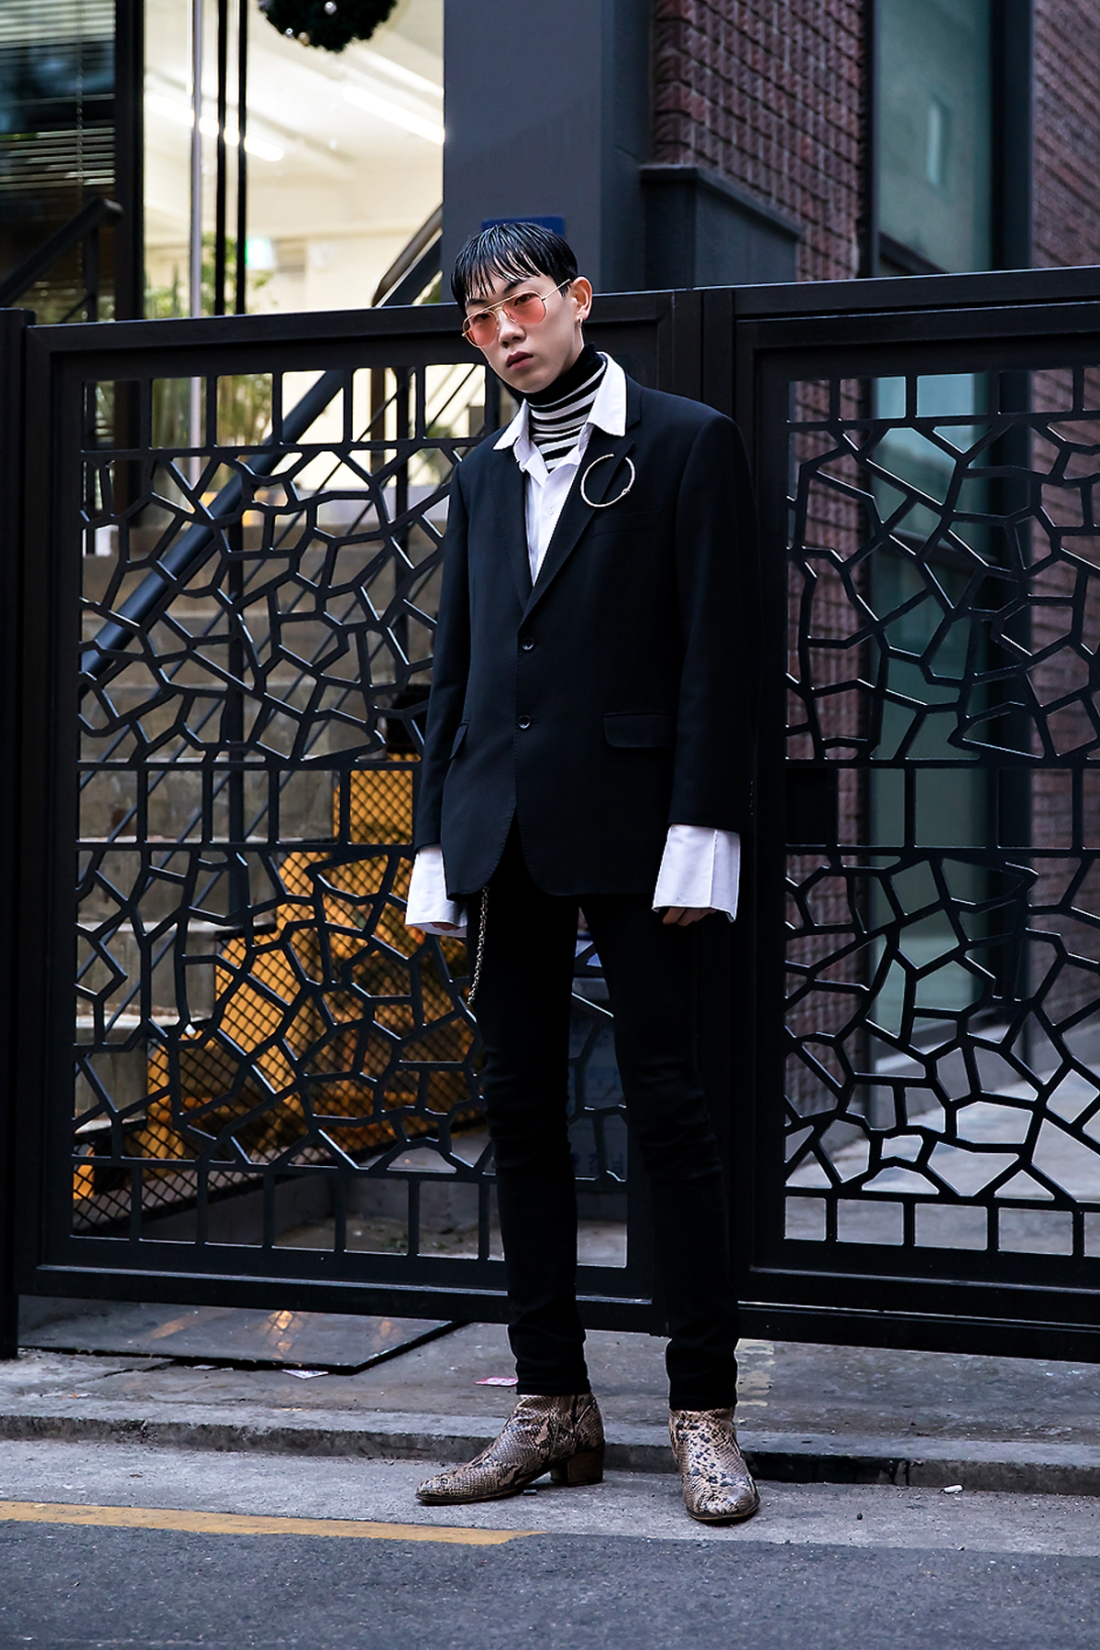 Cho Sangheum, Street Fashion 2017 in SEOUL.jpg